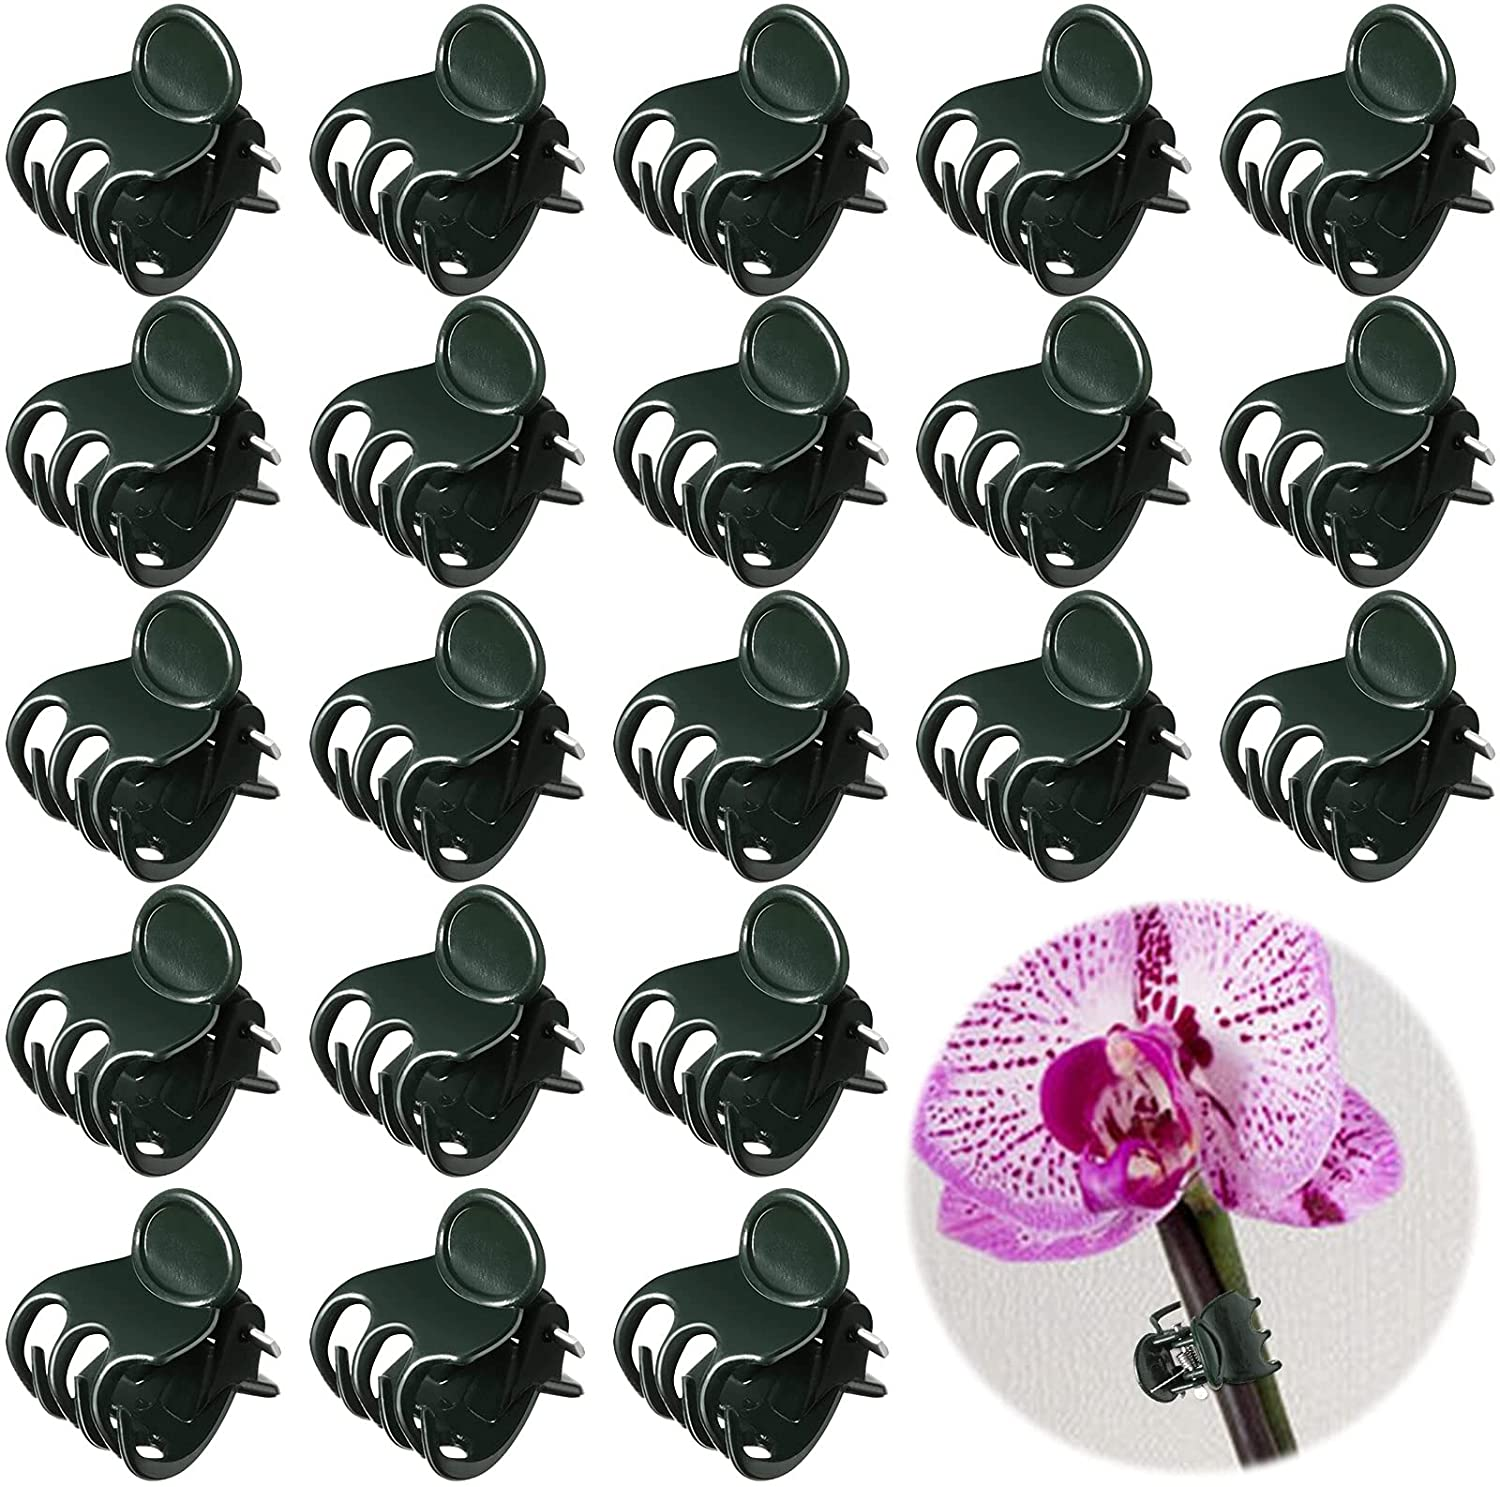 GeiSerailie 200 Pieces Plant Bombing new work Clips Product Garden Vi Orchid Flower